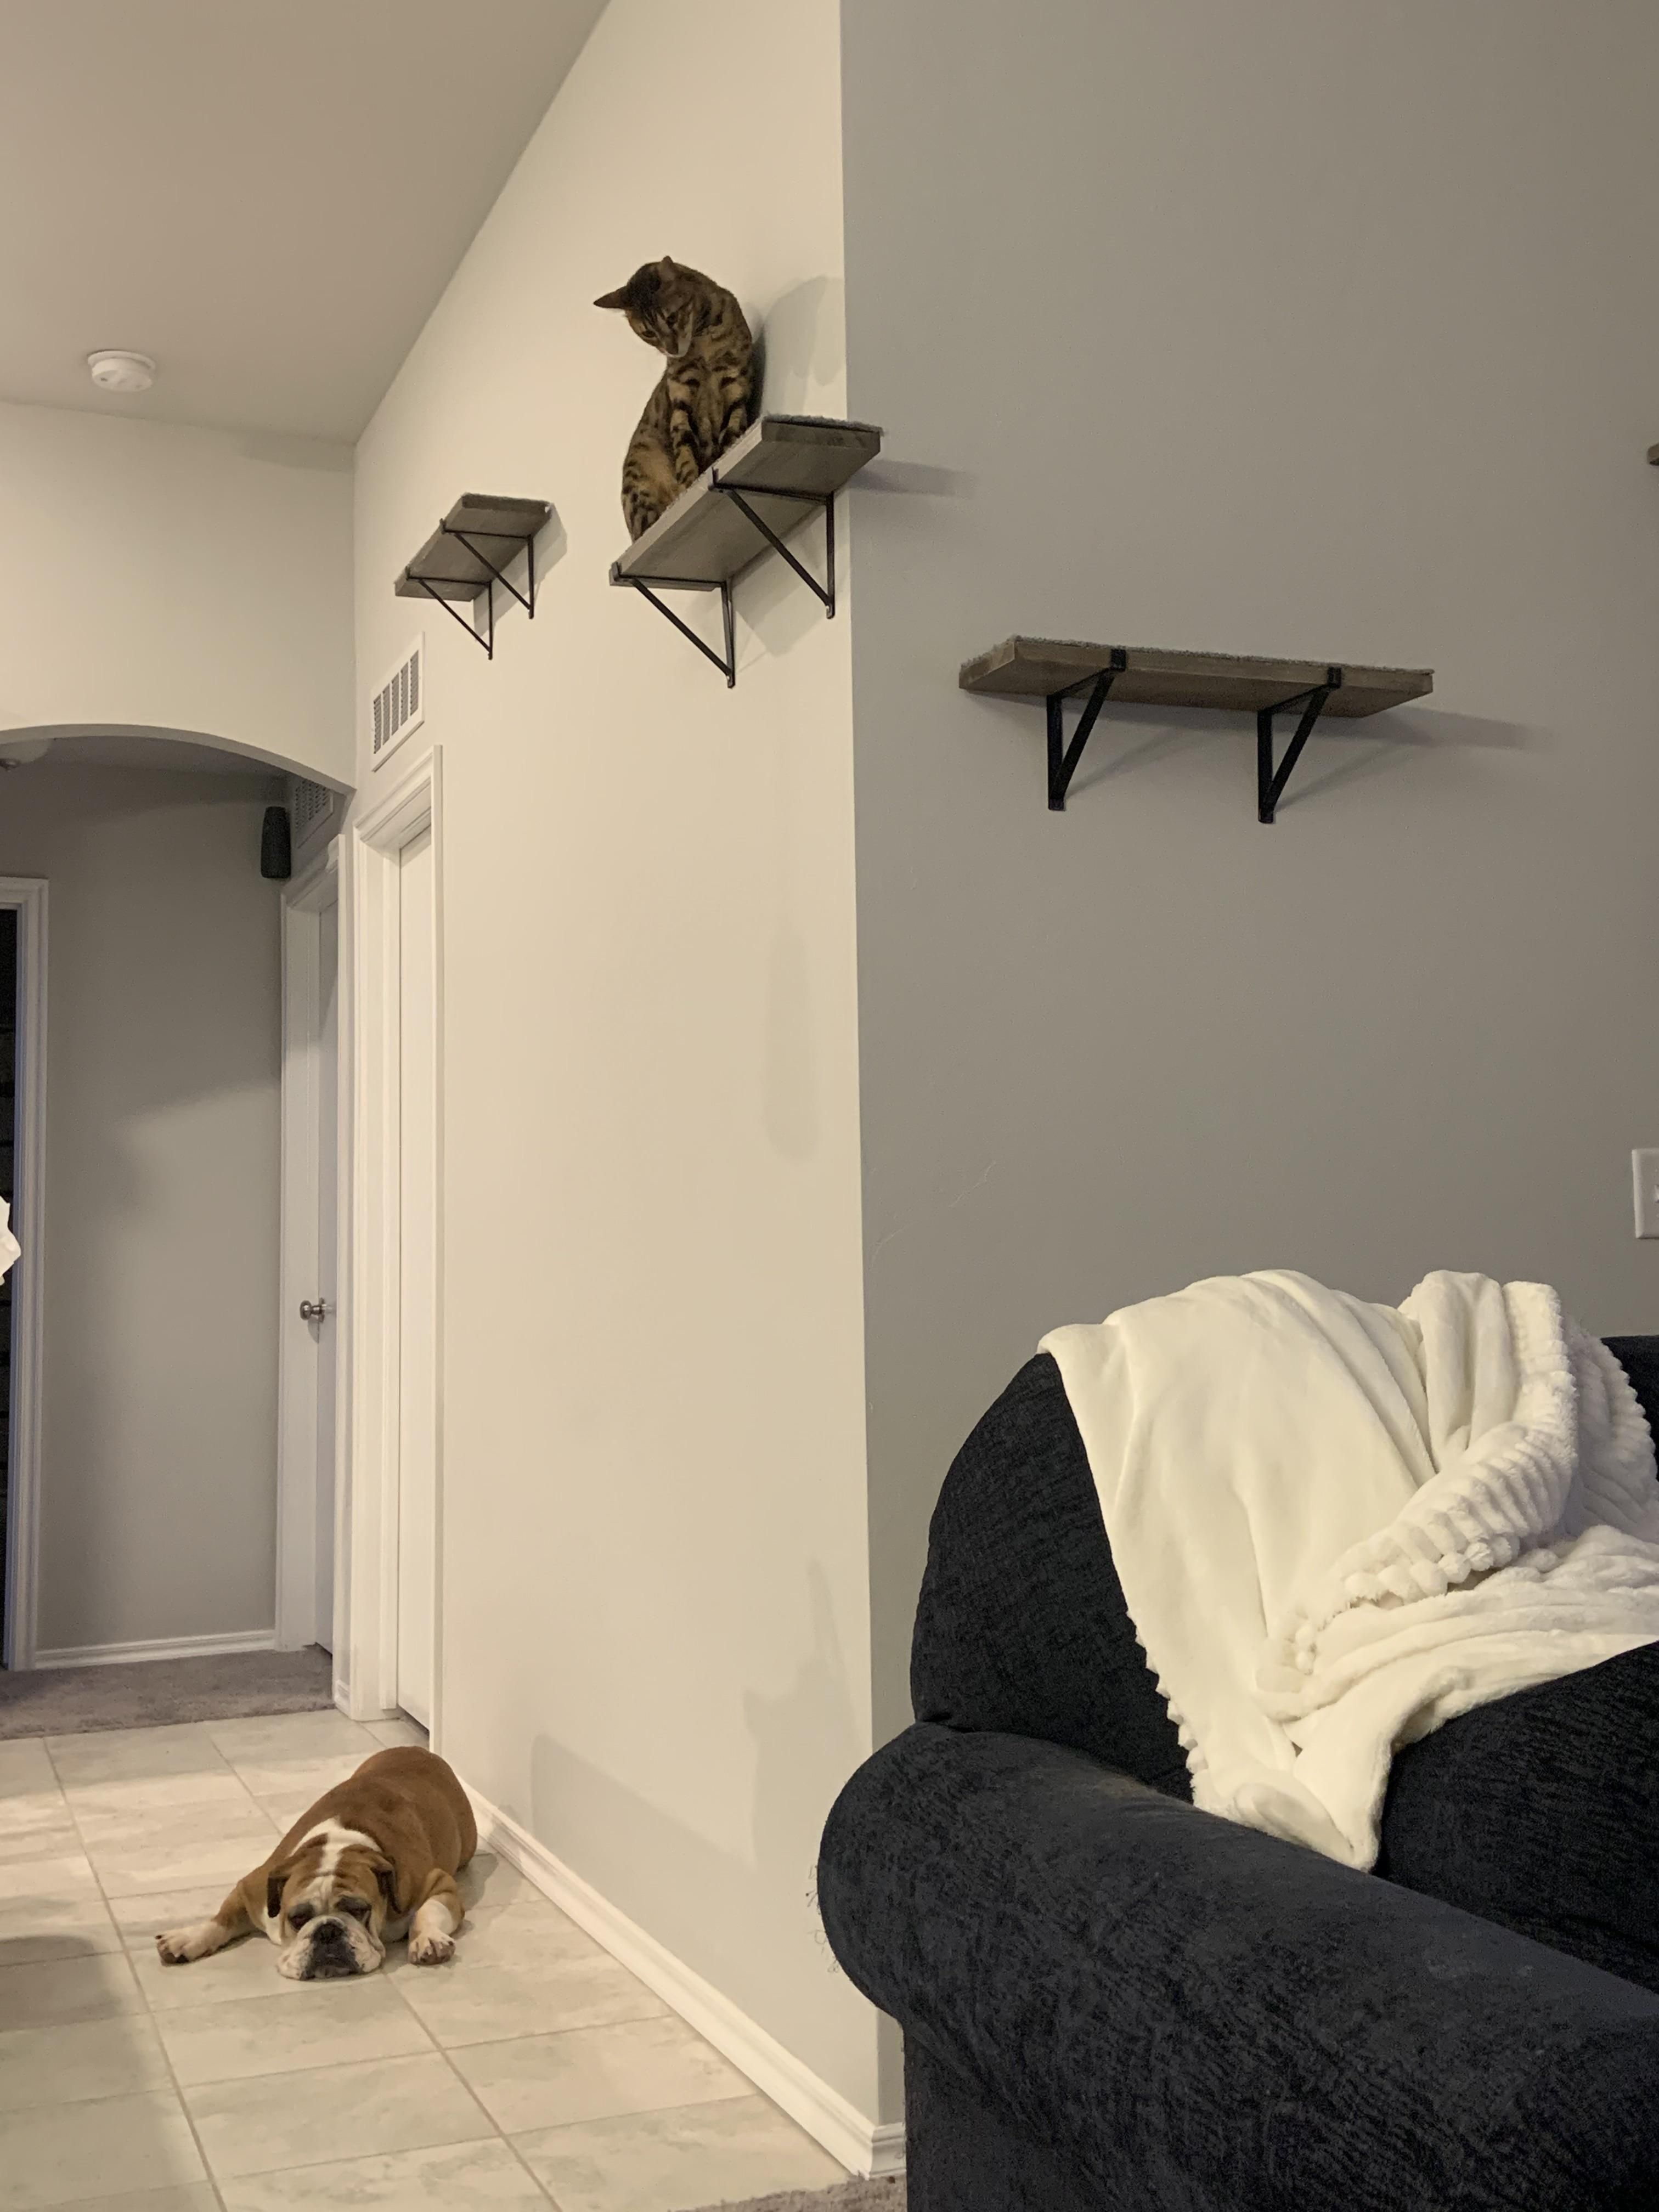 We adopted a bulldog yesterday the cat clearly was not excited about it.